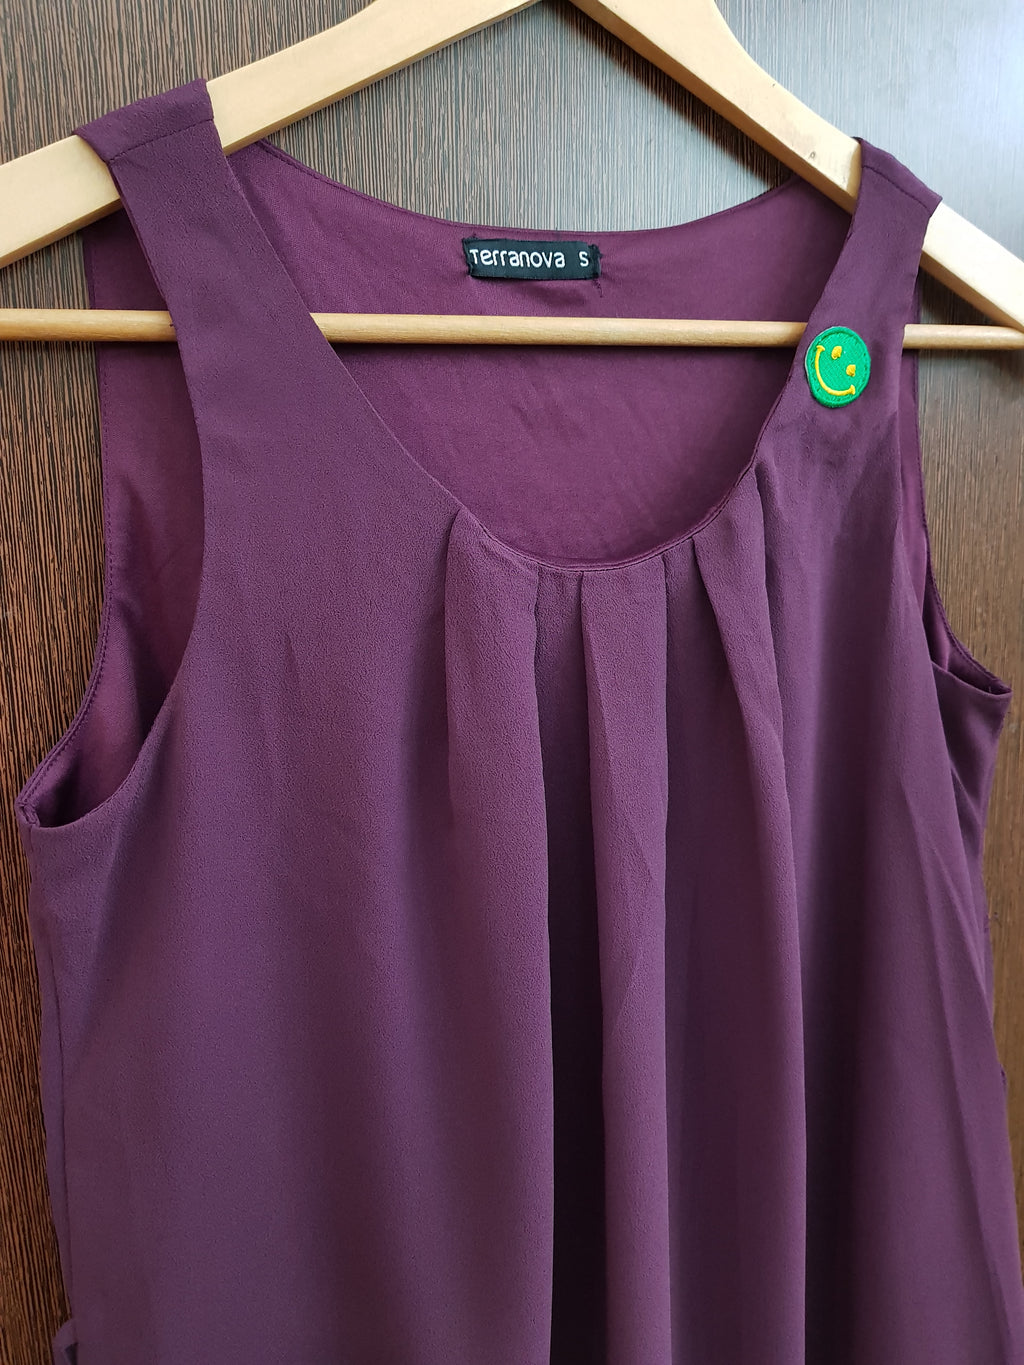 Maroon Smiley Dress